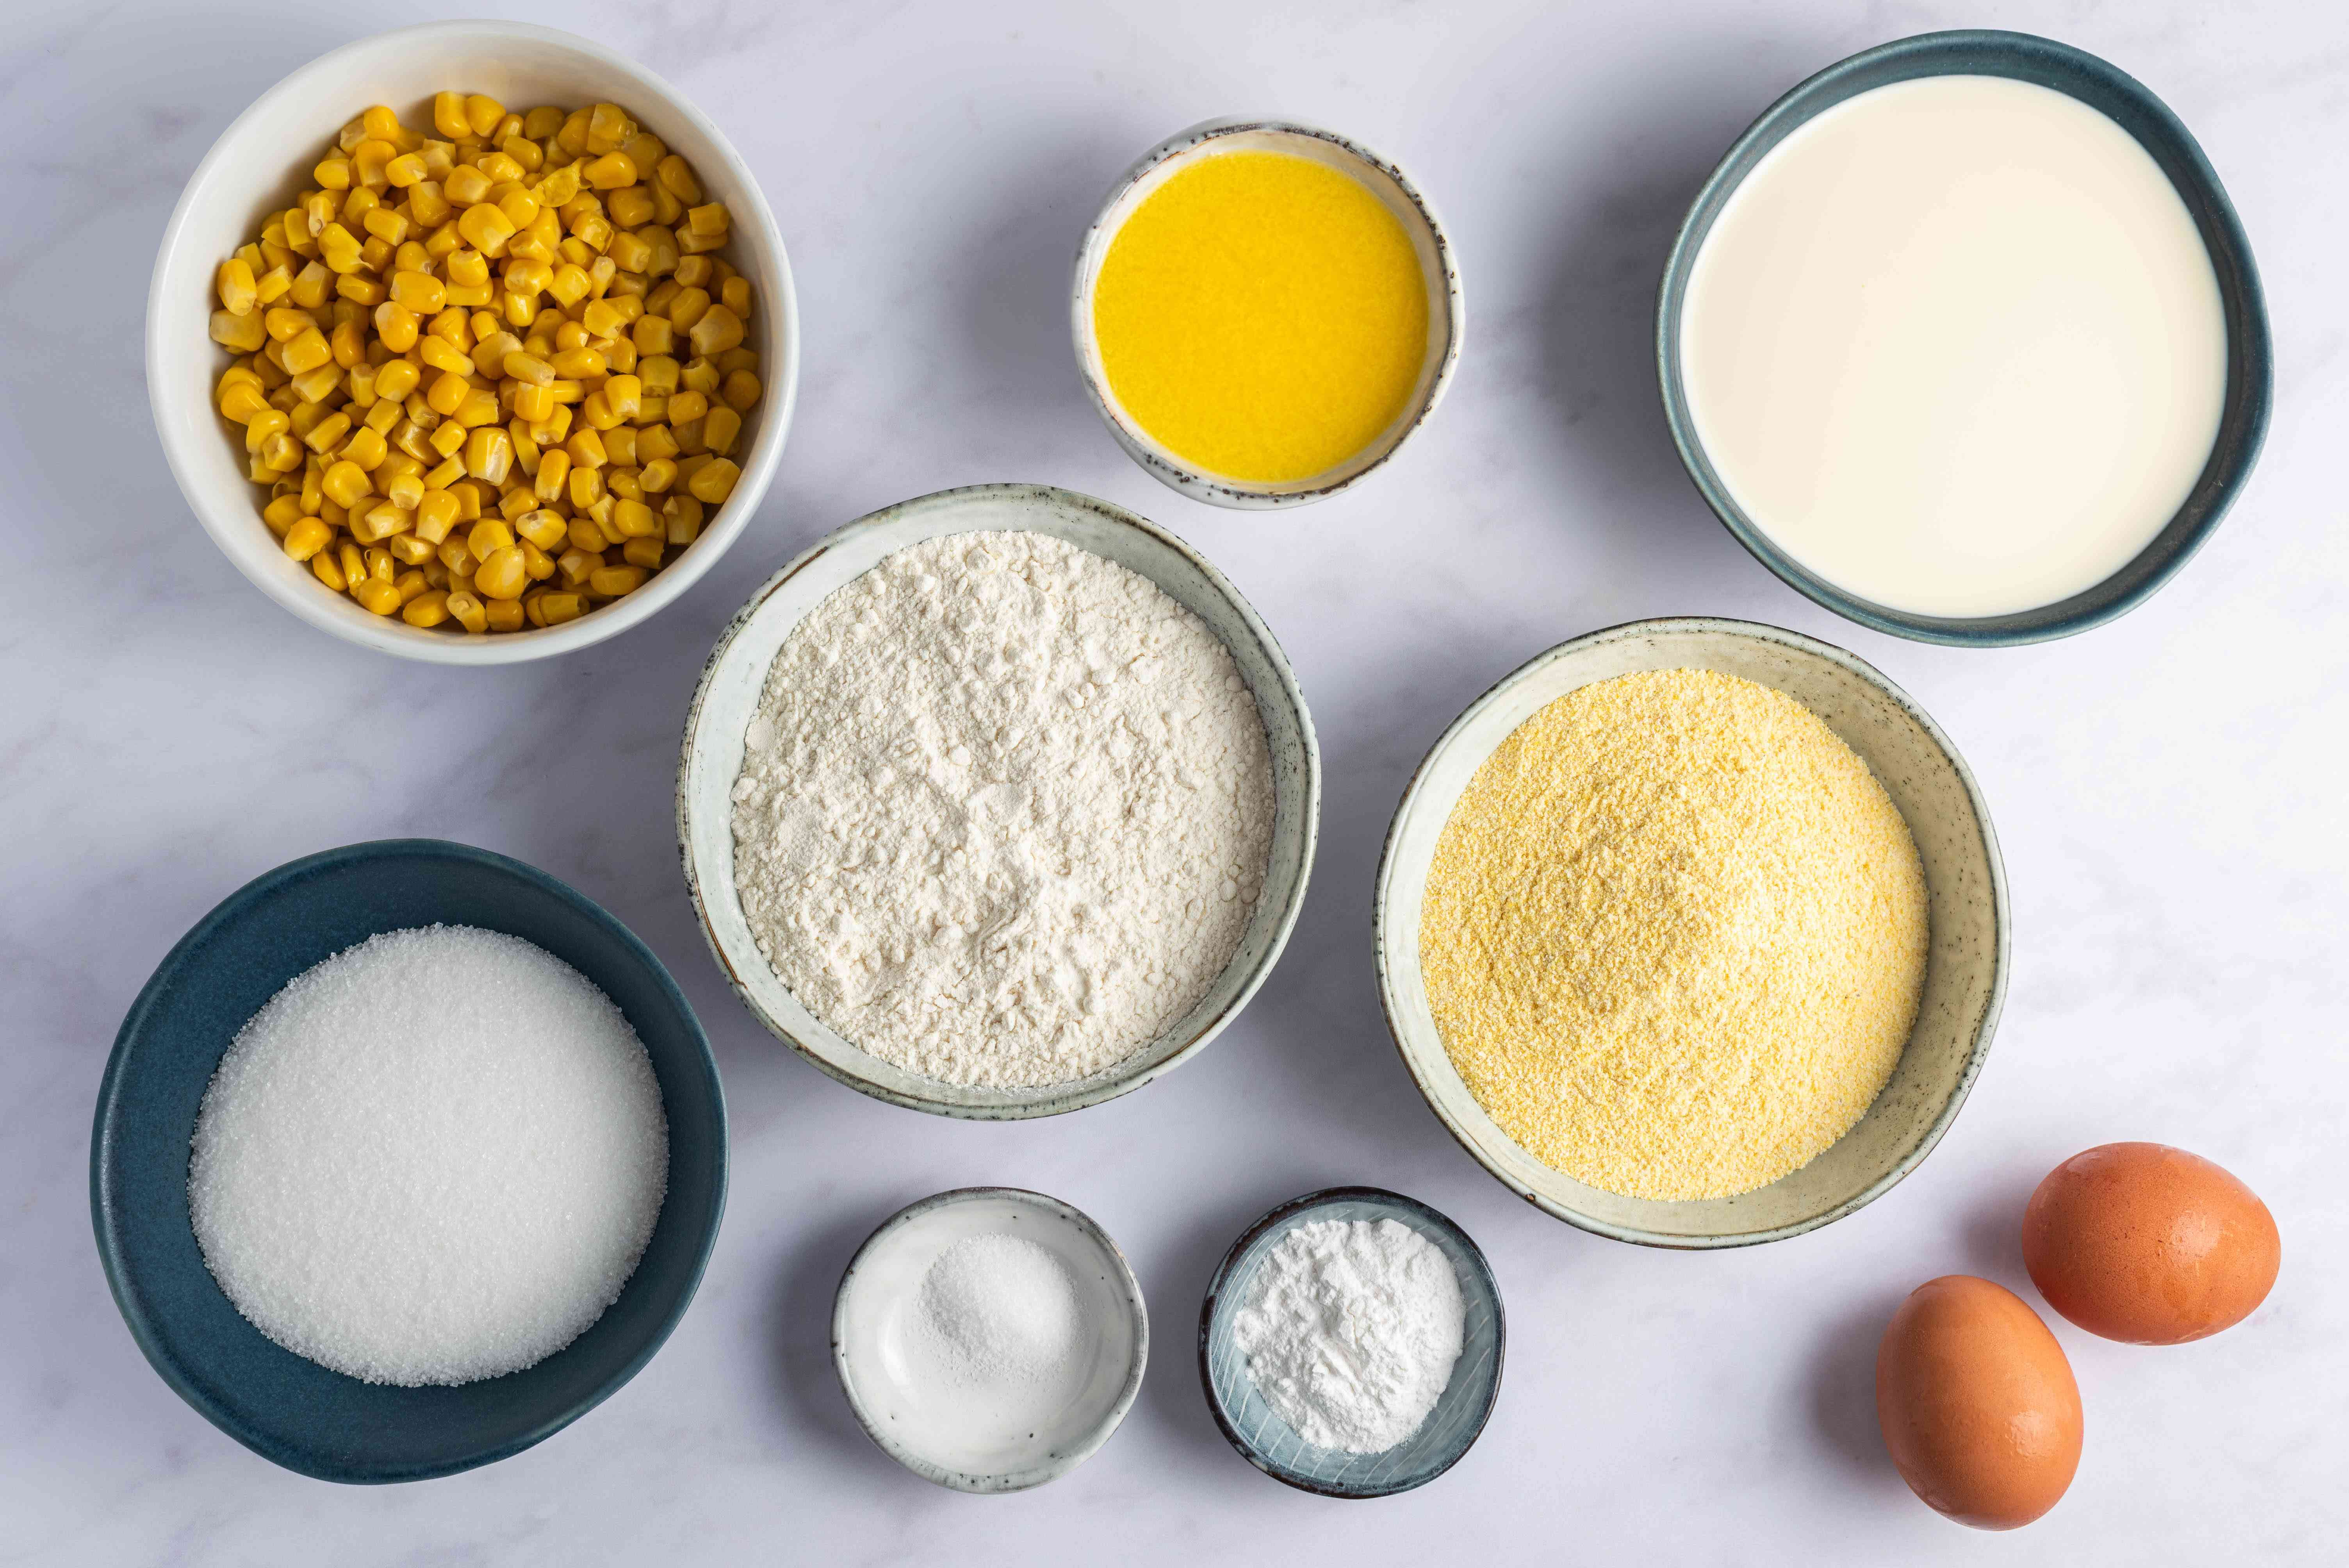 Ingredients for corn bread